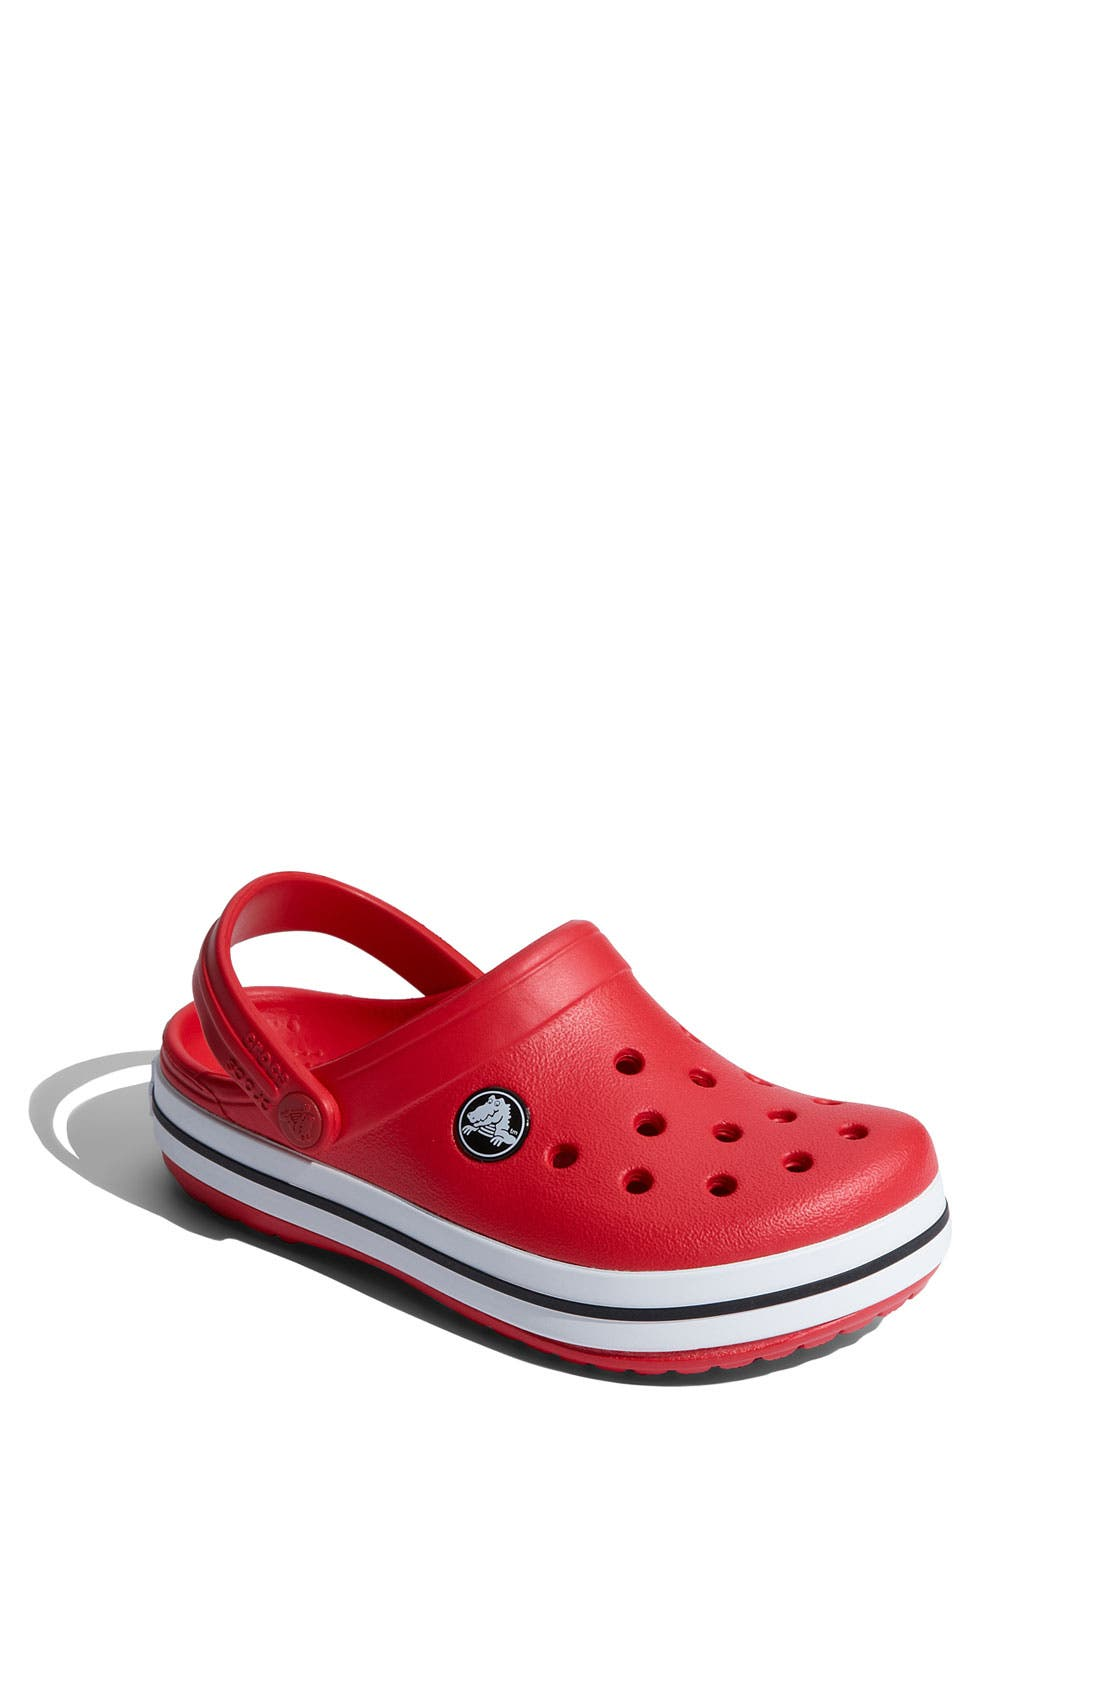 Alternate Image 1 Selected - CROCS™ 'Crocband' Slip-On (Walker, Toddler & Little Kid)